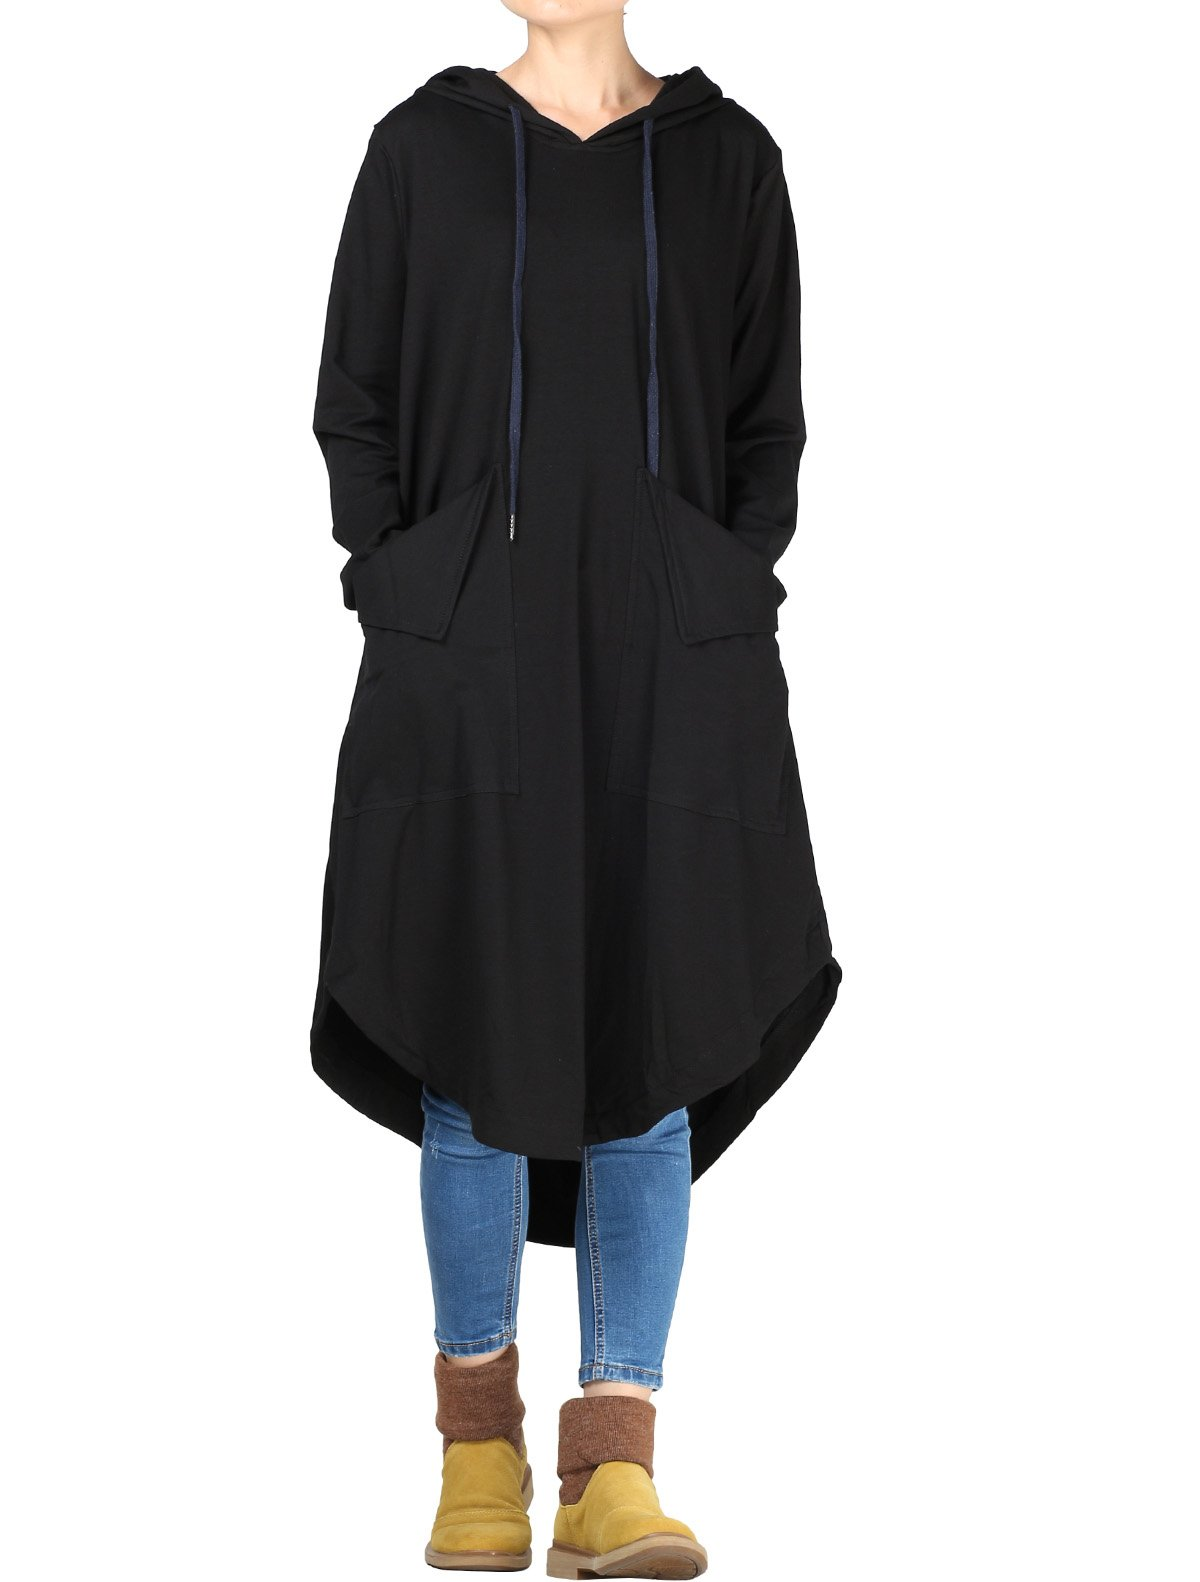 Mordenmiss Women's Drawstring Hood Sweatshirt Dress with Big Pockets L Black